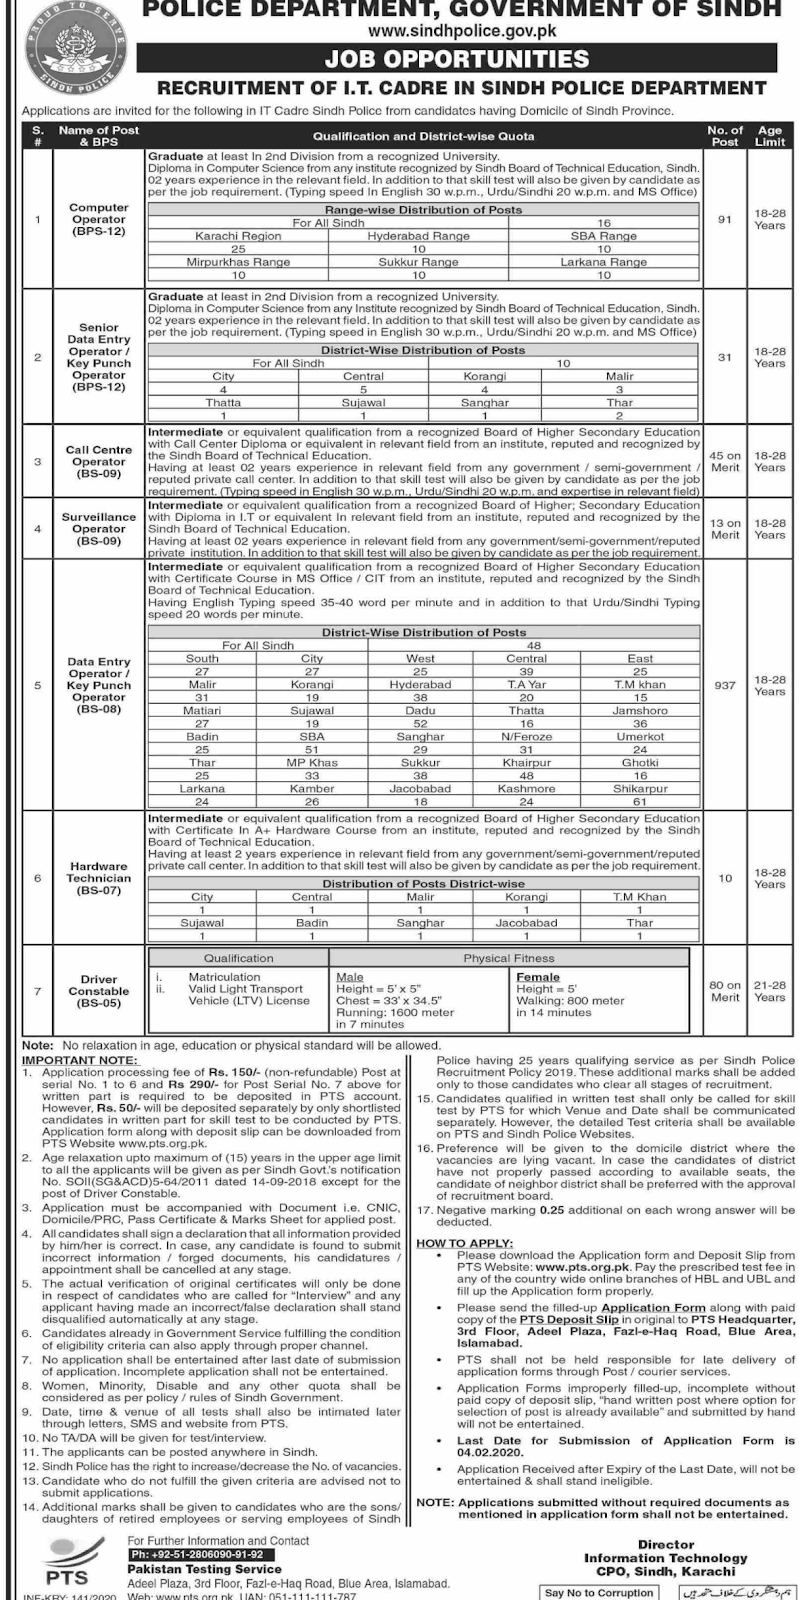 Jobs in Police Department Government of Sindh Latest Advertisement 2020